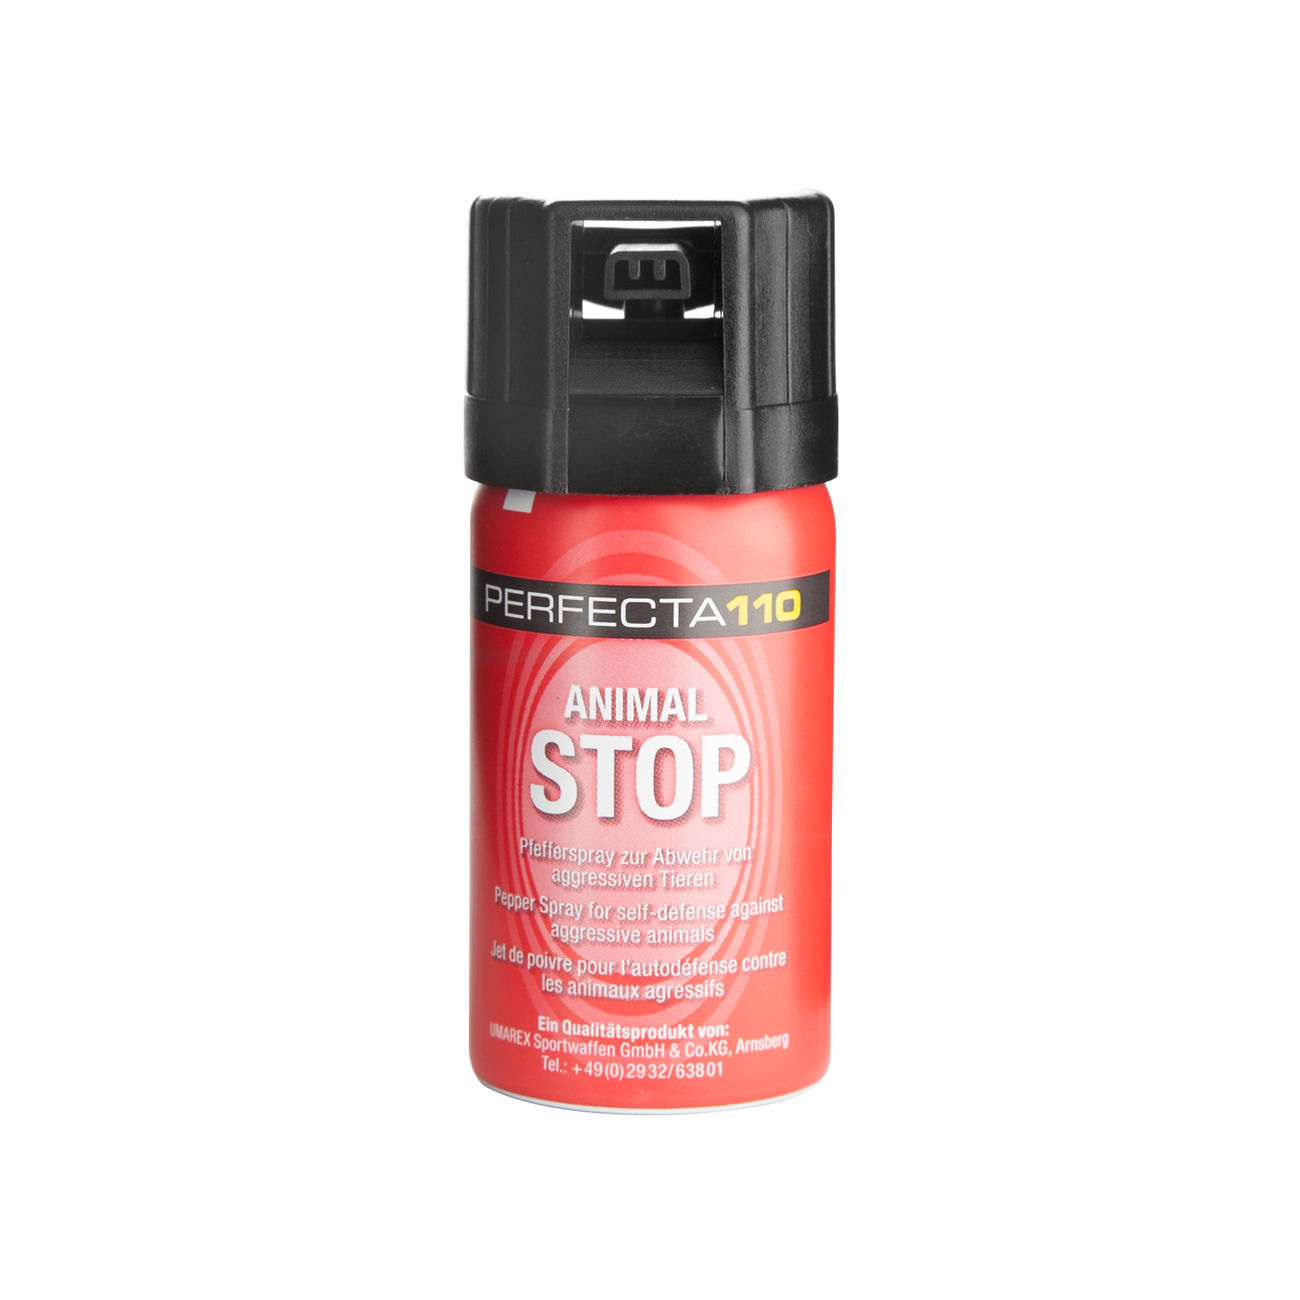 Animal STOP Pfefferspray Breitstrahl, 40 ml 0